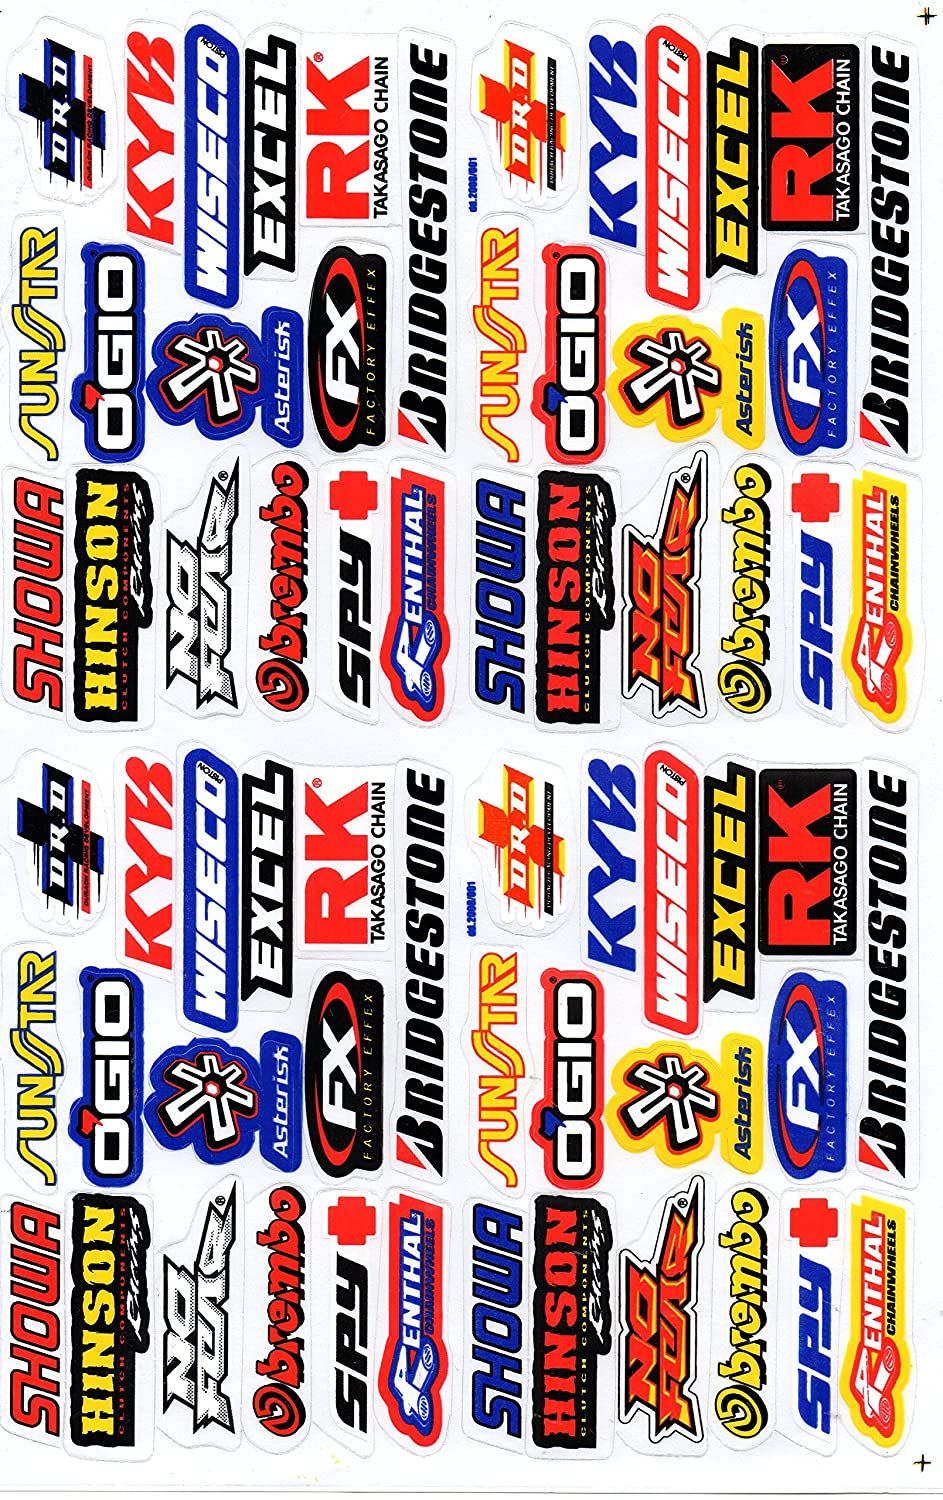 Sponsors Hoja Racing Decal Sticker Tuning Racing Tama/ño 27 x 18 cm para el coche o la moto